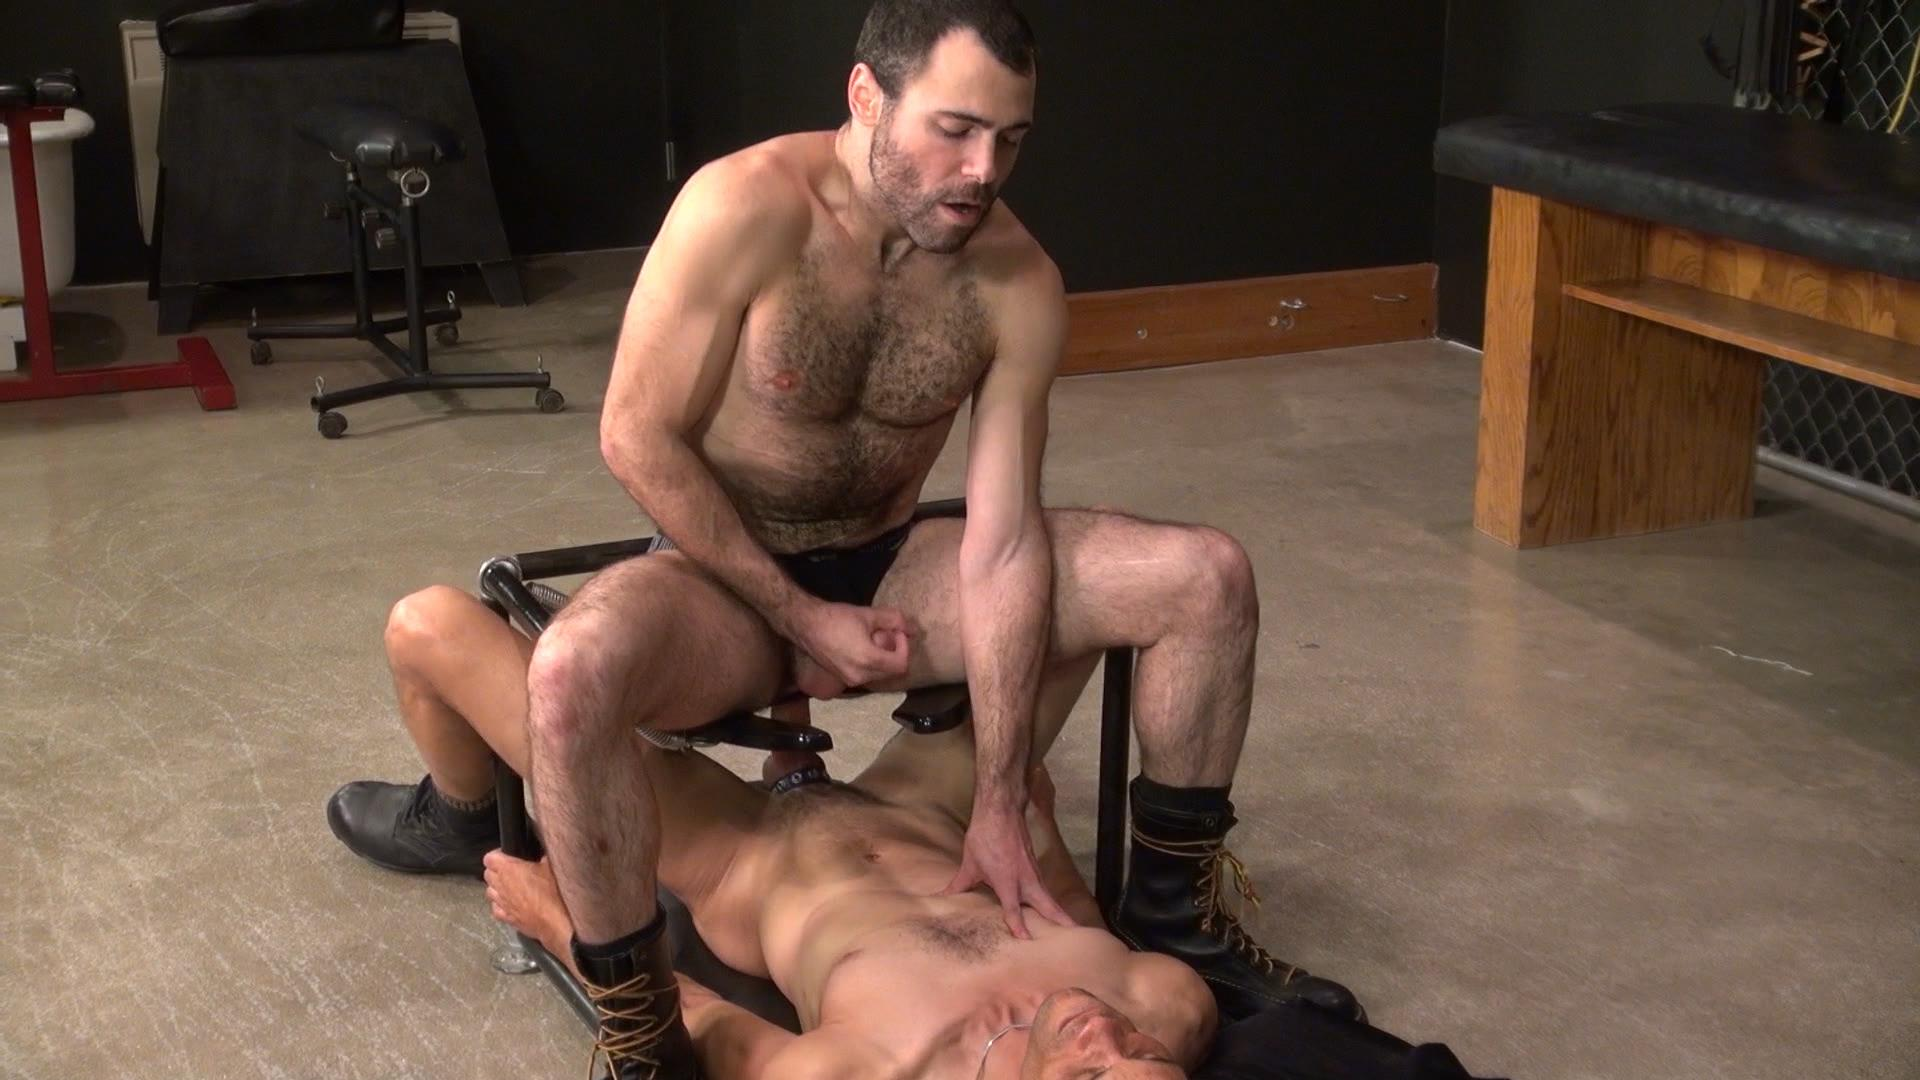 Raw and Rough Dusty Williams and Seth Patrick Barebacking A Stranger at A Sex Club Hairy Amateur Gay Porn 08 Barebacking A Hairy Guy At A Gay Sex Club